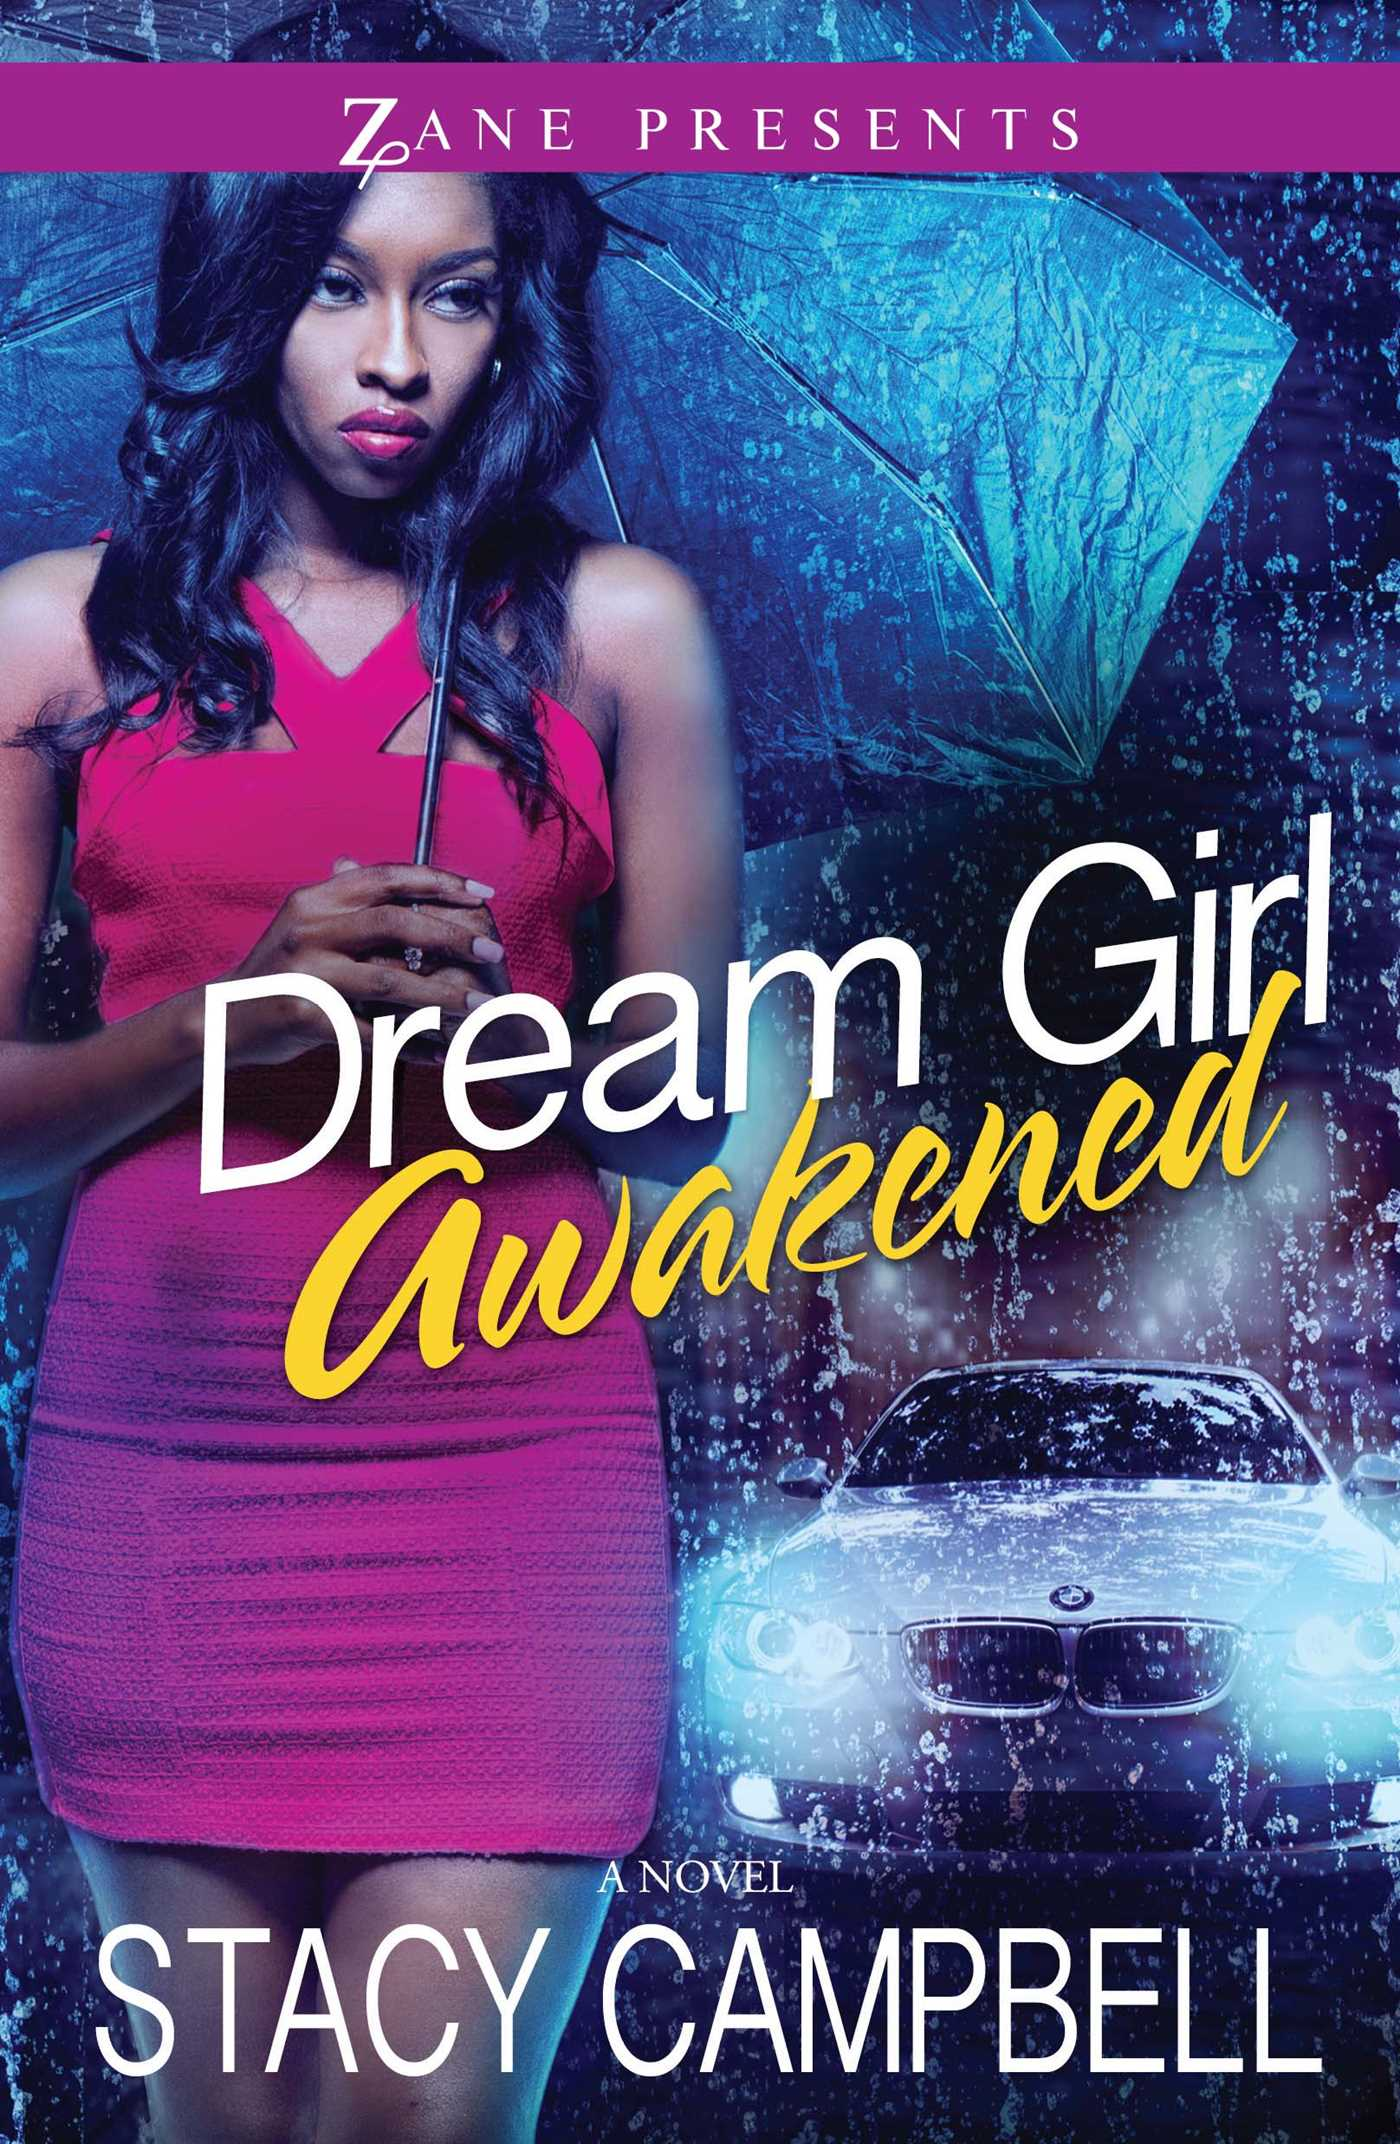 Dream girl awakened 9781593094577 hr